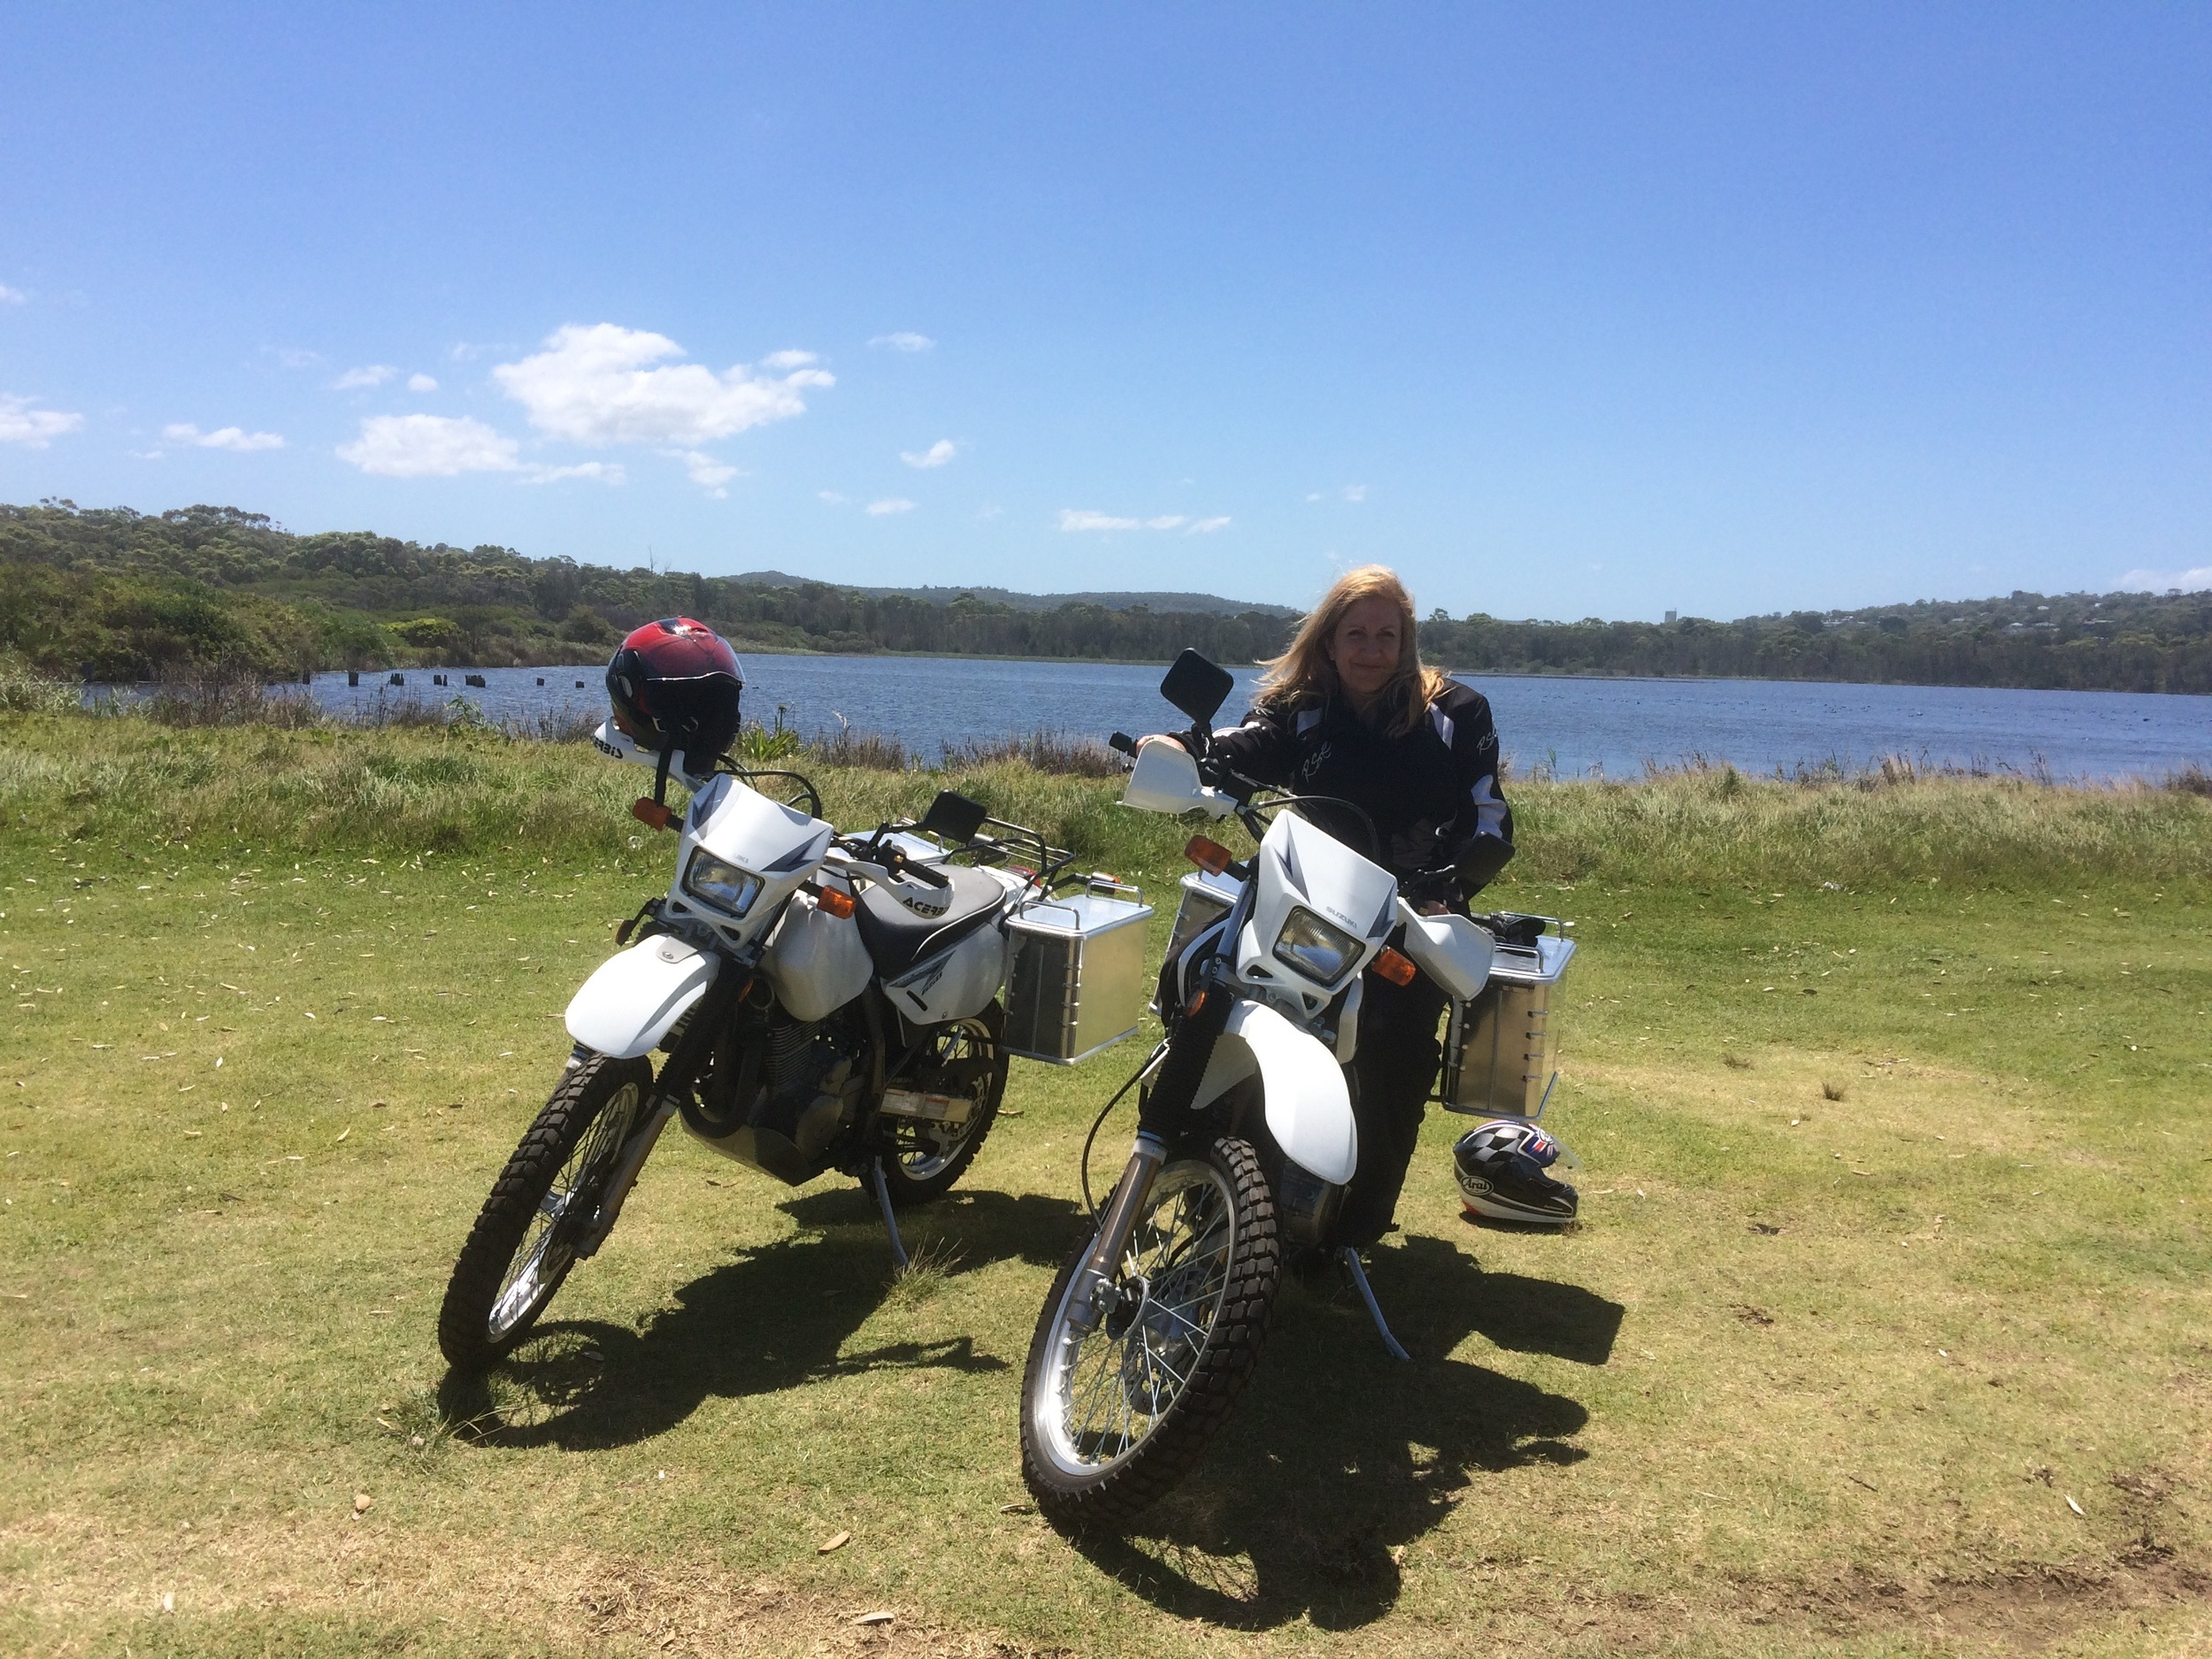 One of our first rides on the brand new DR's, just up to Dee Why, north of Sydney.